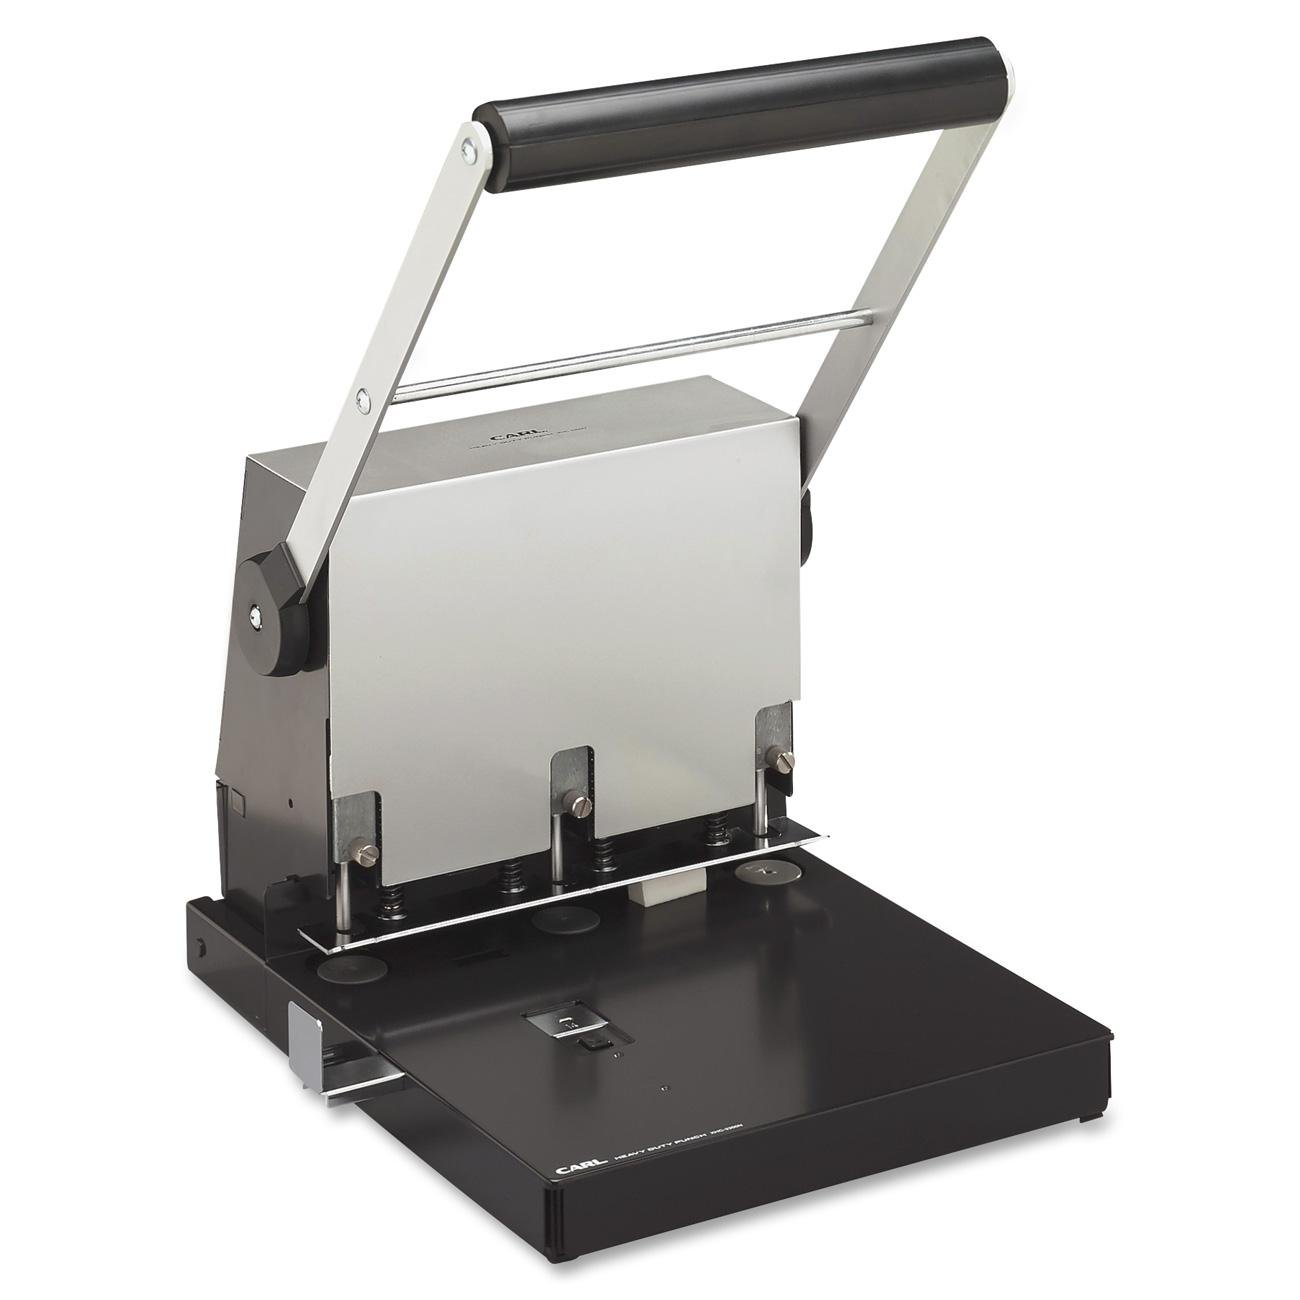 CARL Heavy-Duty 3 Hole Punch - 3 Punch Head(s) - Adjustable - 300 Sheet Capacity - 0.28'' - Platinum